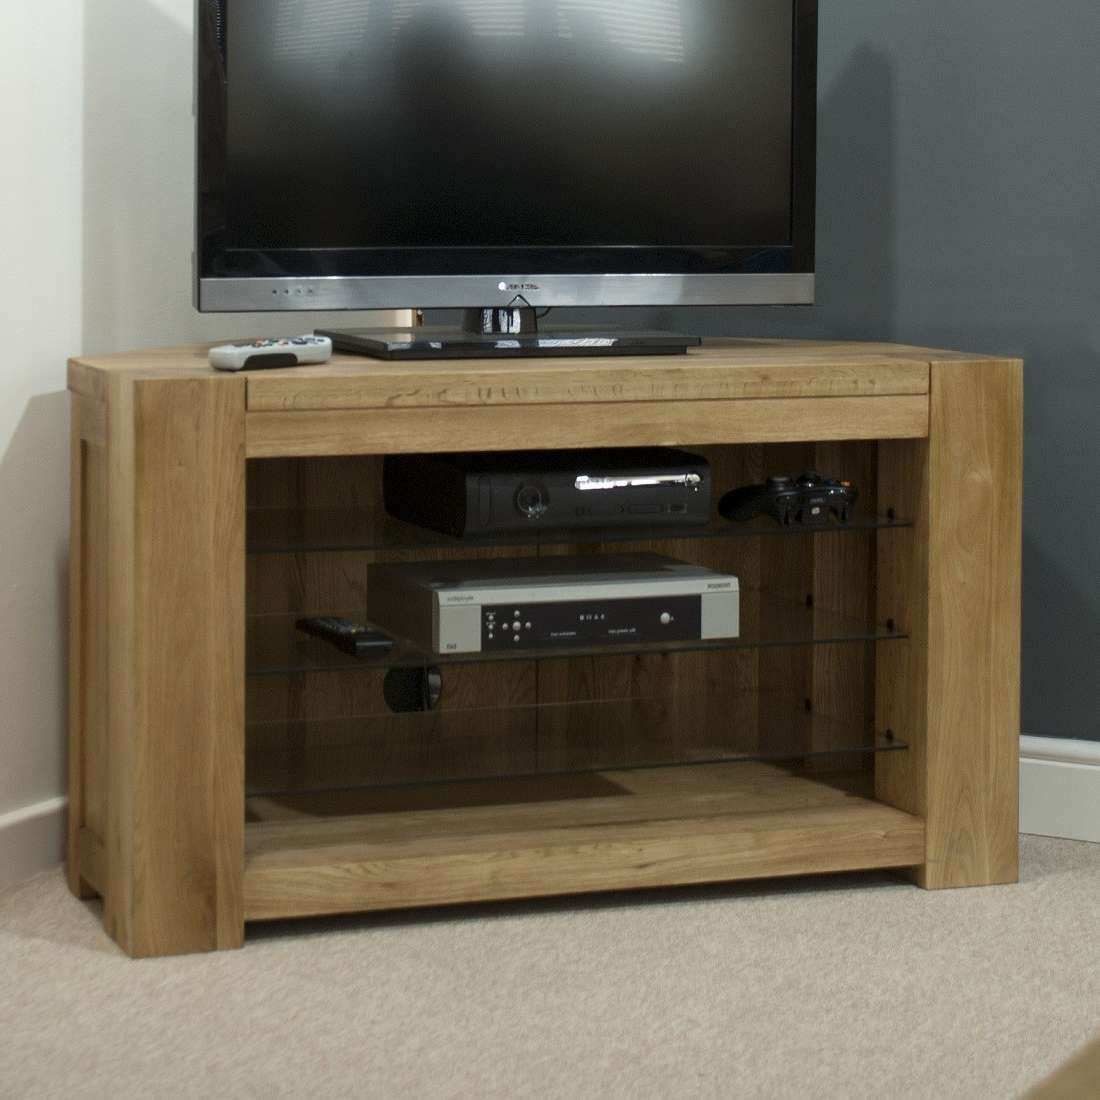 Trend Solid Oak Corner Tv Unit | Oak Furniture Uk In Contemporary Oak Tv Stands (View 11 of 15)